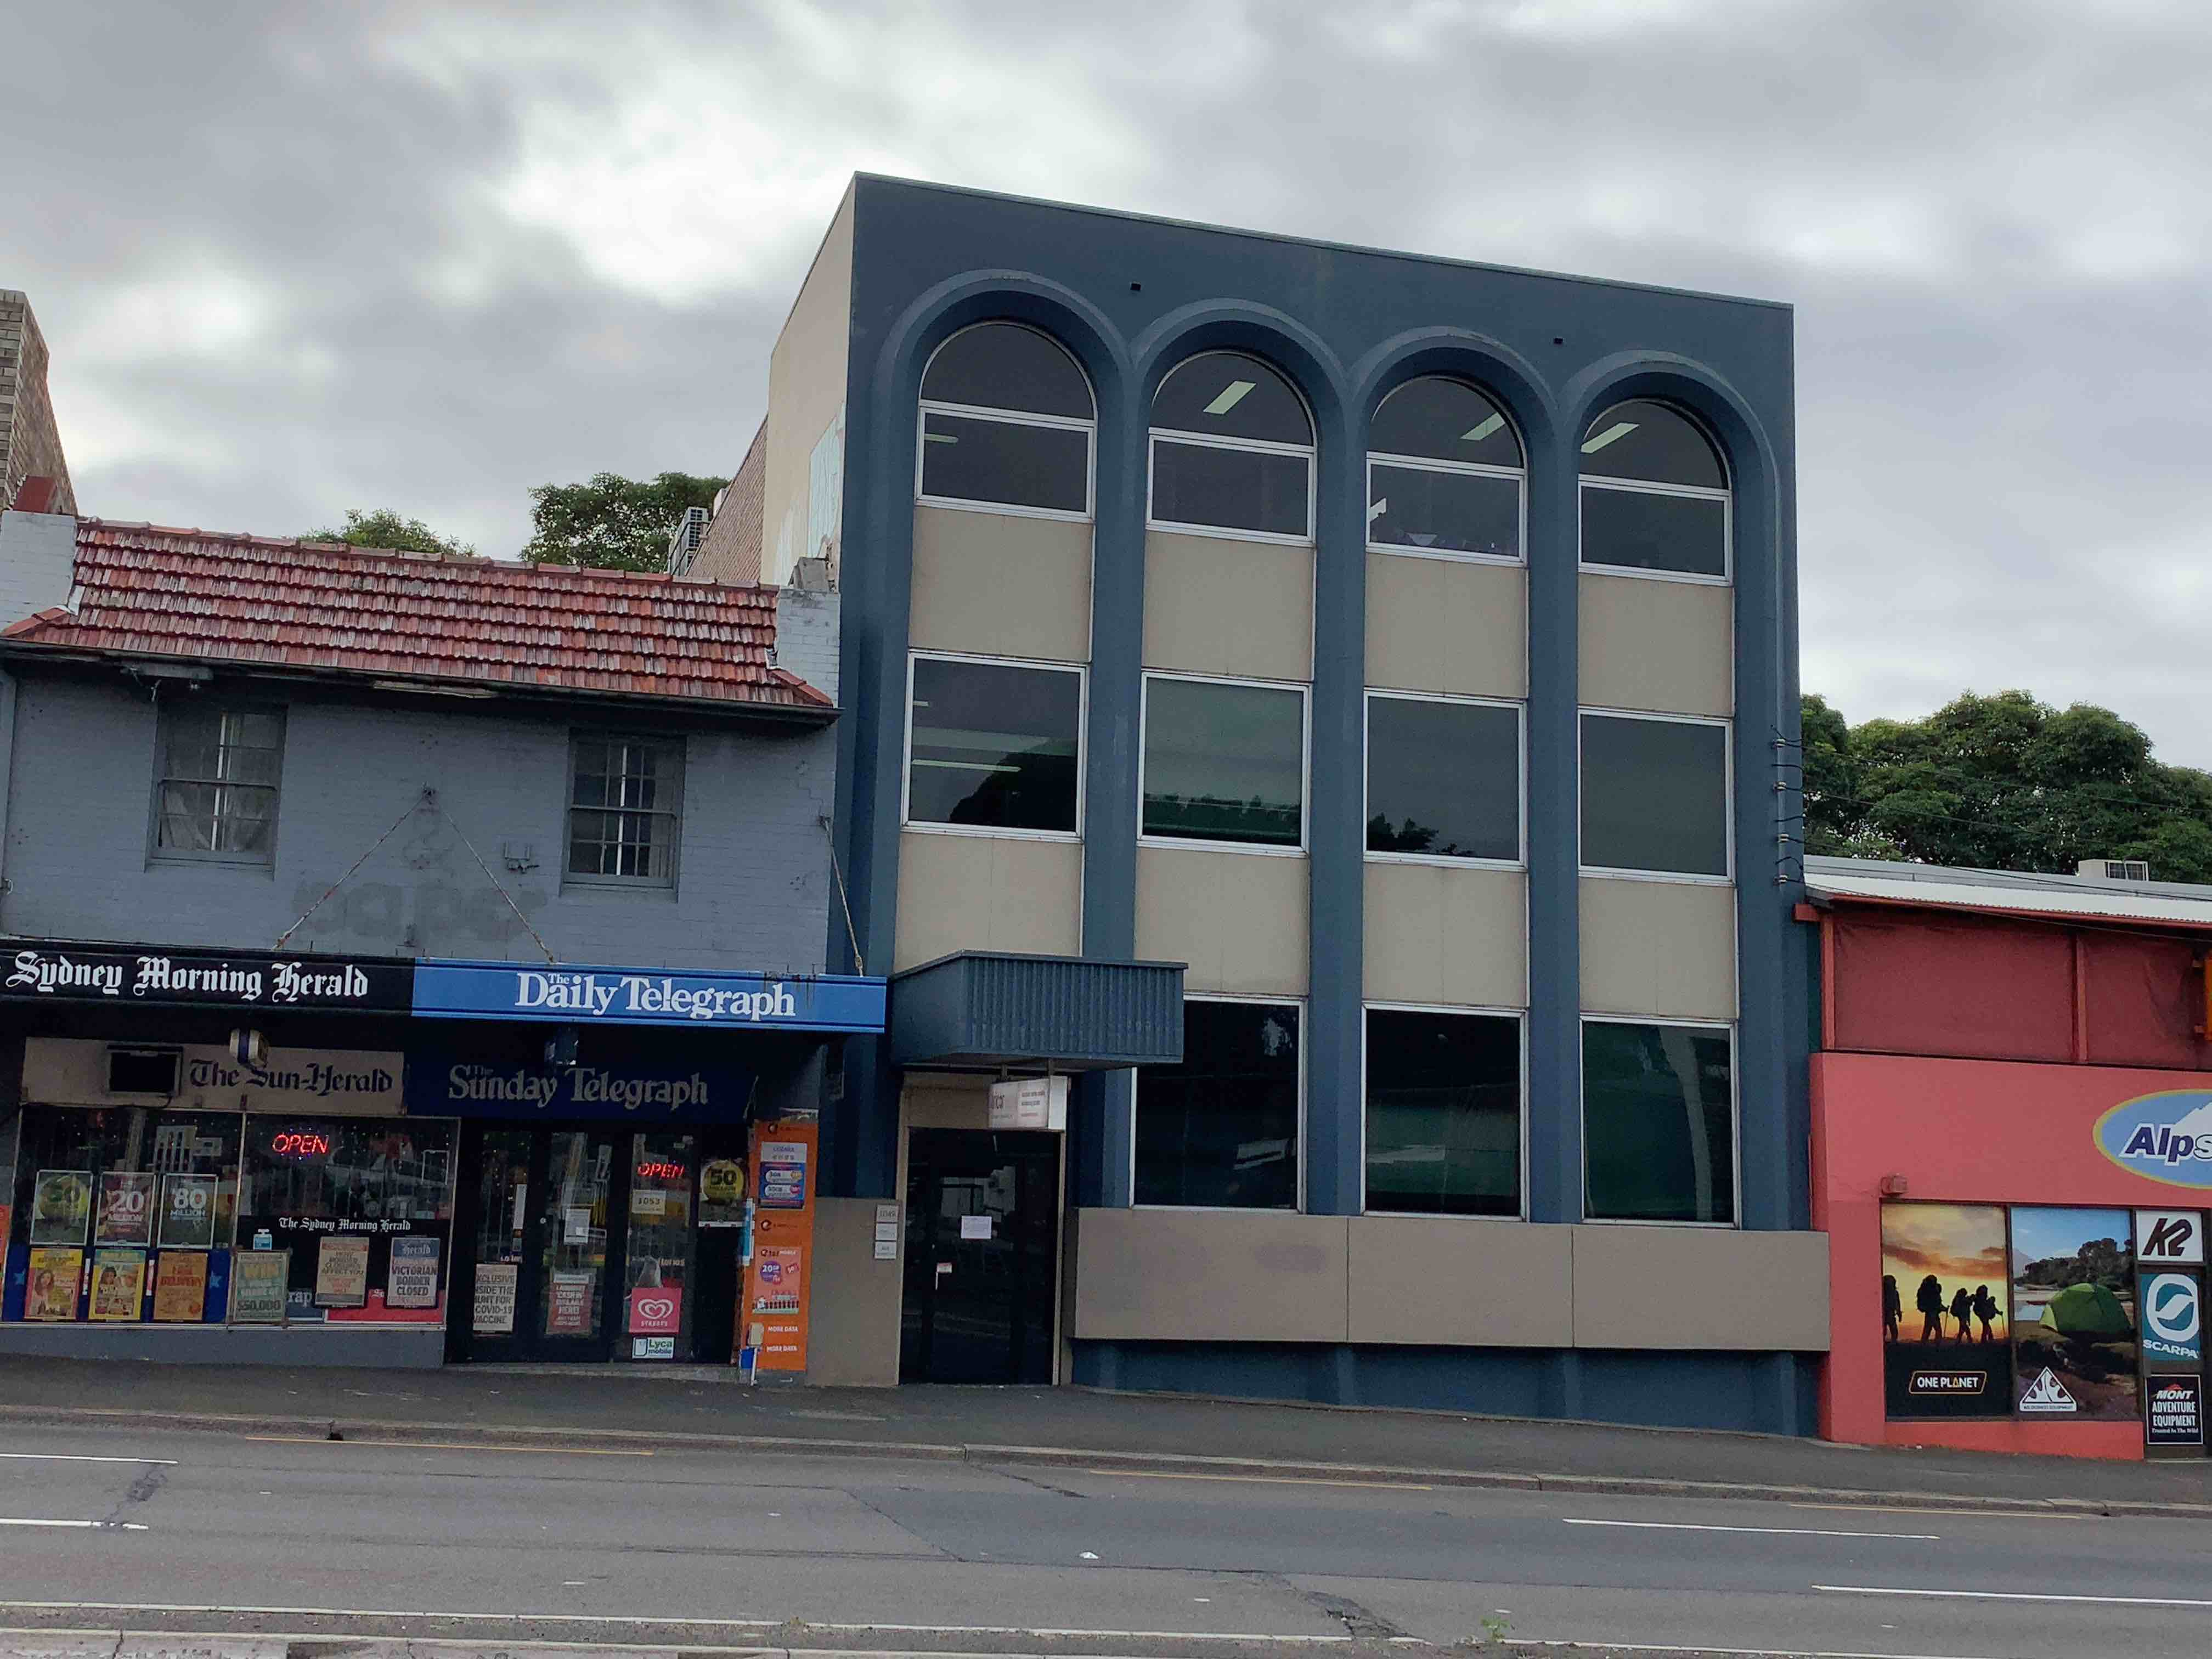 Commercial property for lease in west ryde 3